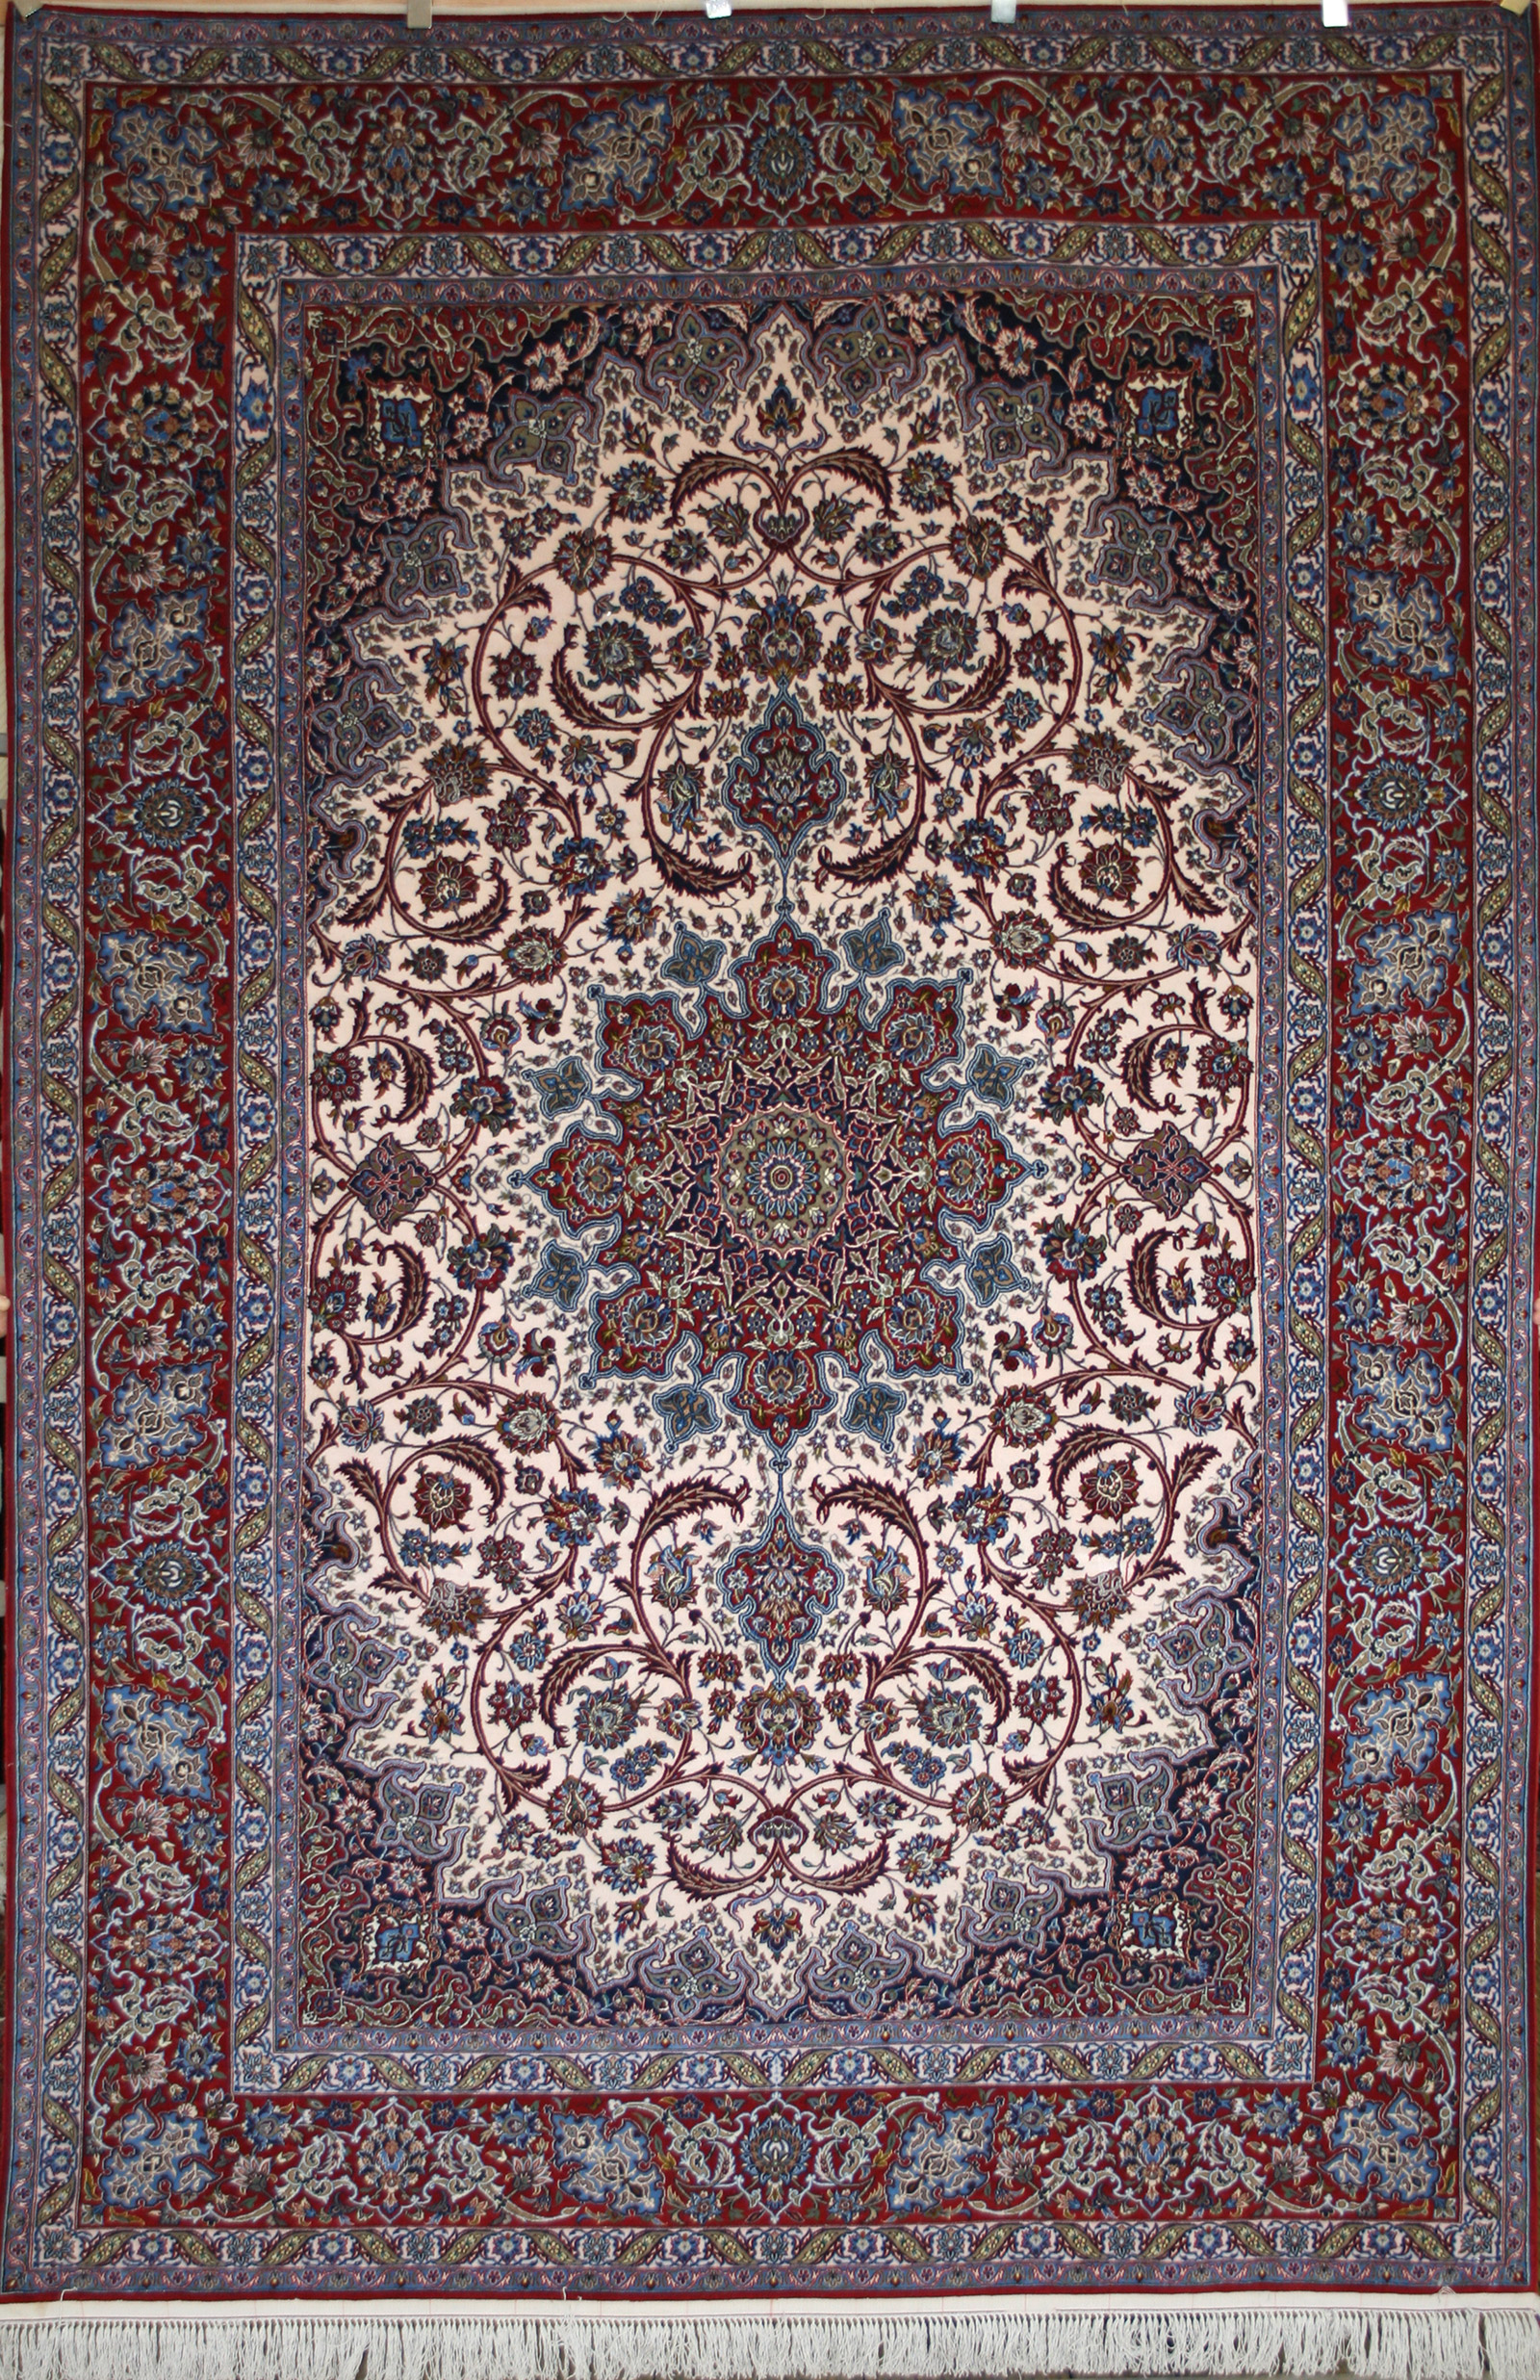 A fine Isfahan rug with a traditional central medallion pattern and colouring